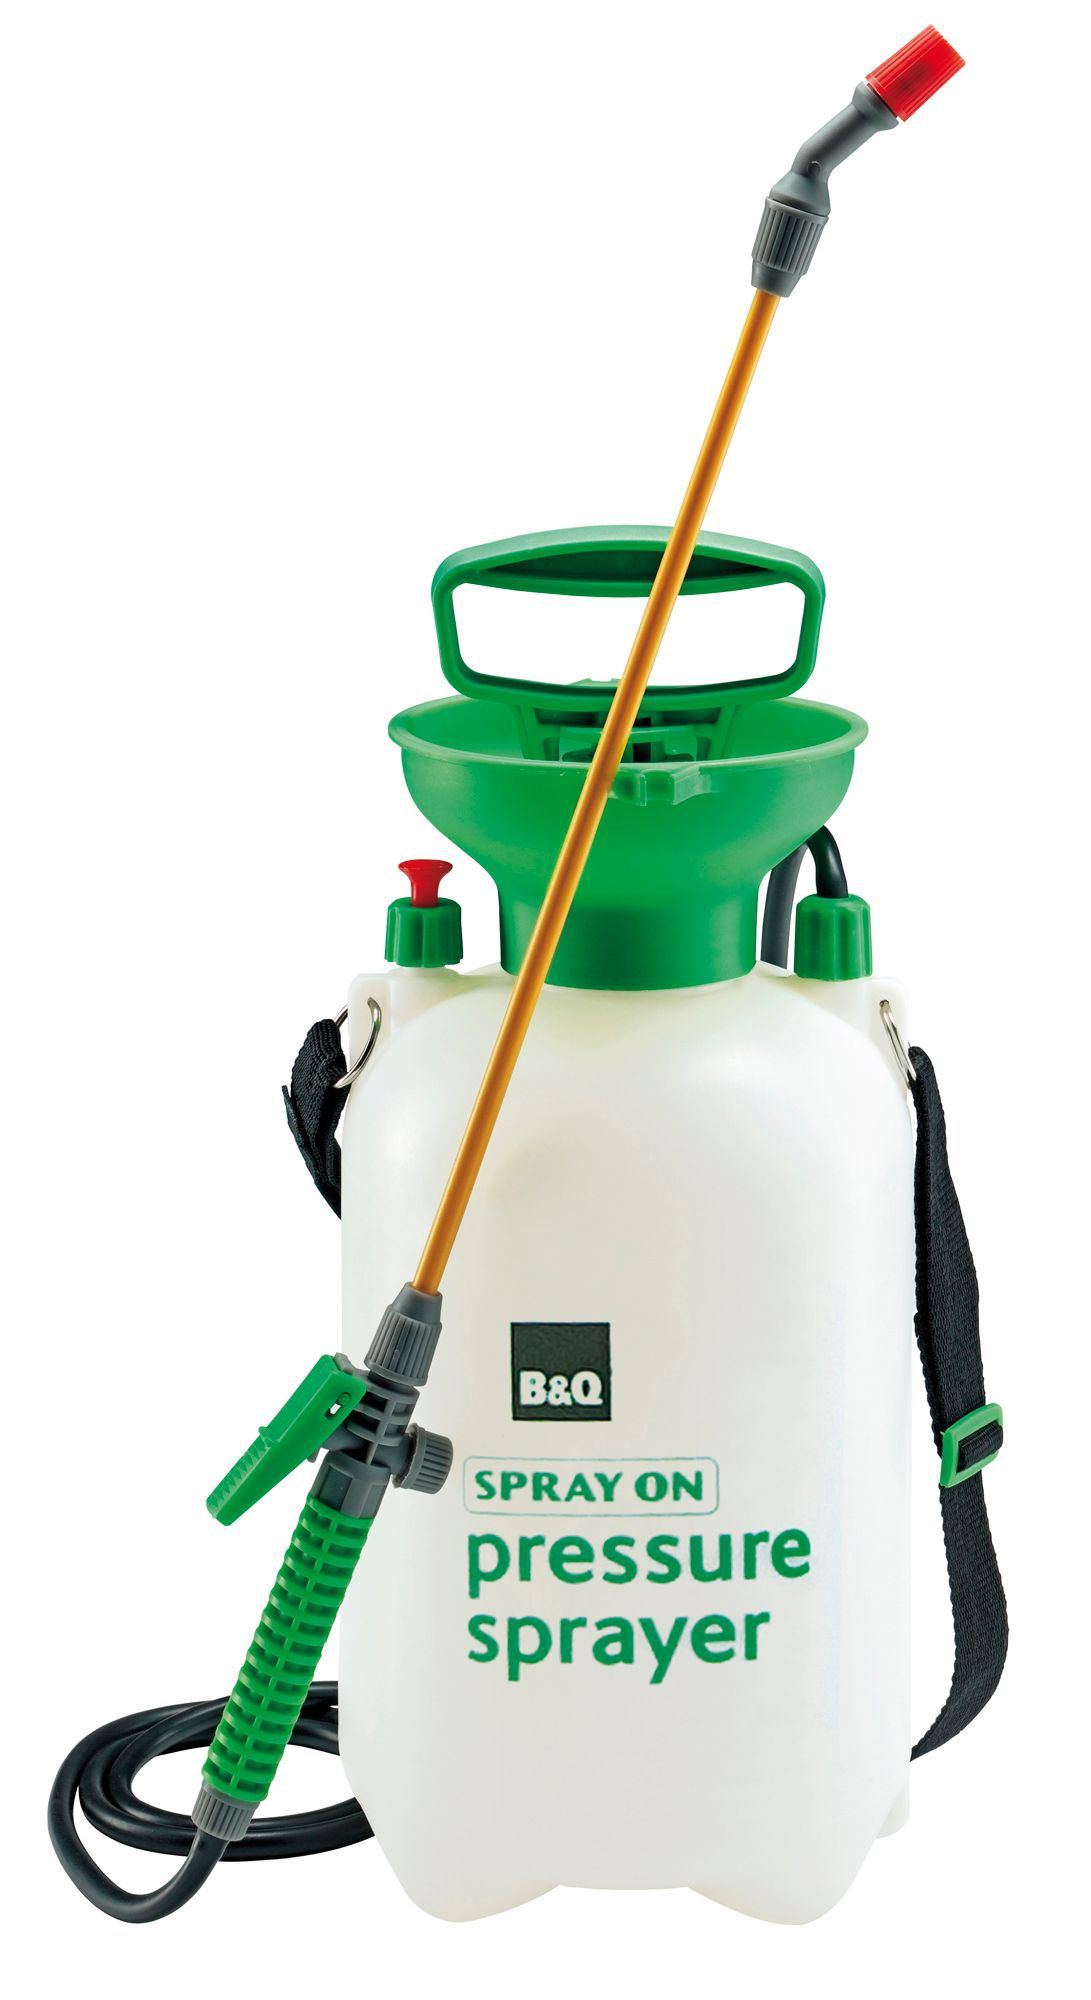 B Amp Q Garden Sprayer Sx Cs5a Departments Diy At B Amp Q